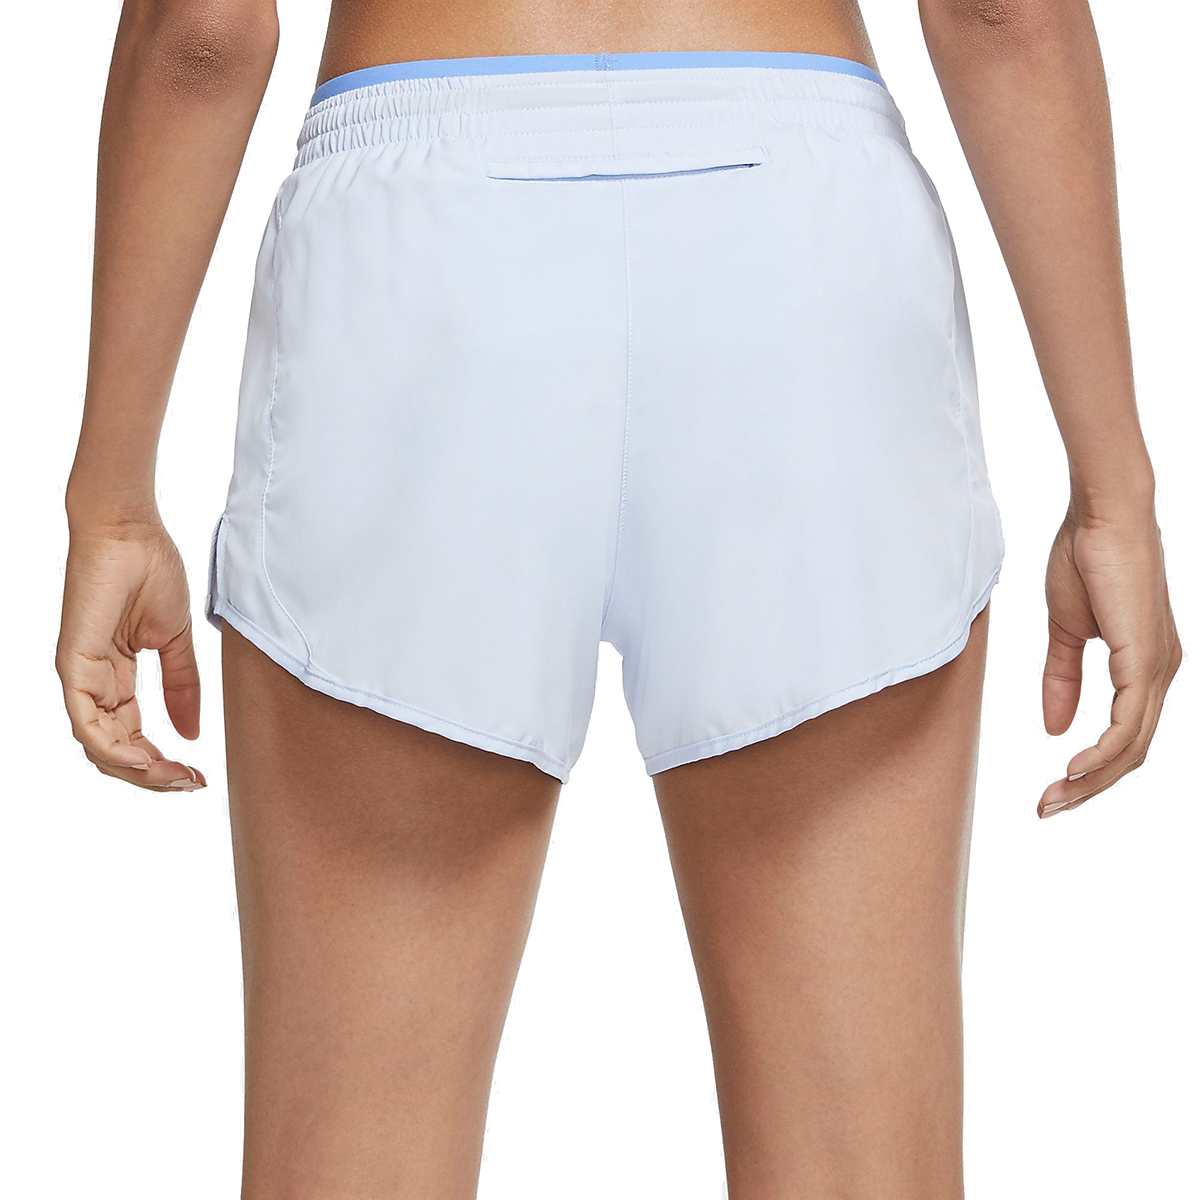 Women's Nike Tempo Luxe 3in Shorts - Color: Hydrogen Blue/Royal Pulse - Size: XS, Hydrogen Blue/Royal Pulse, large, image 2